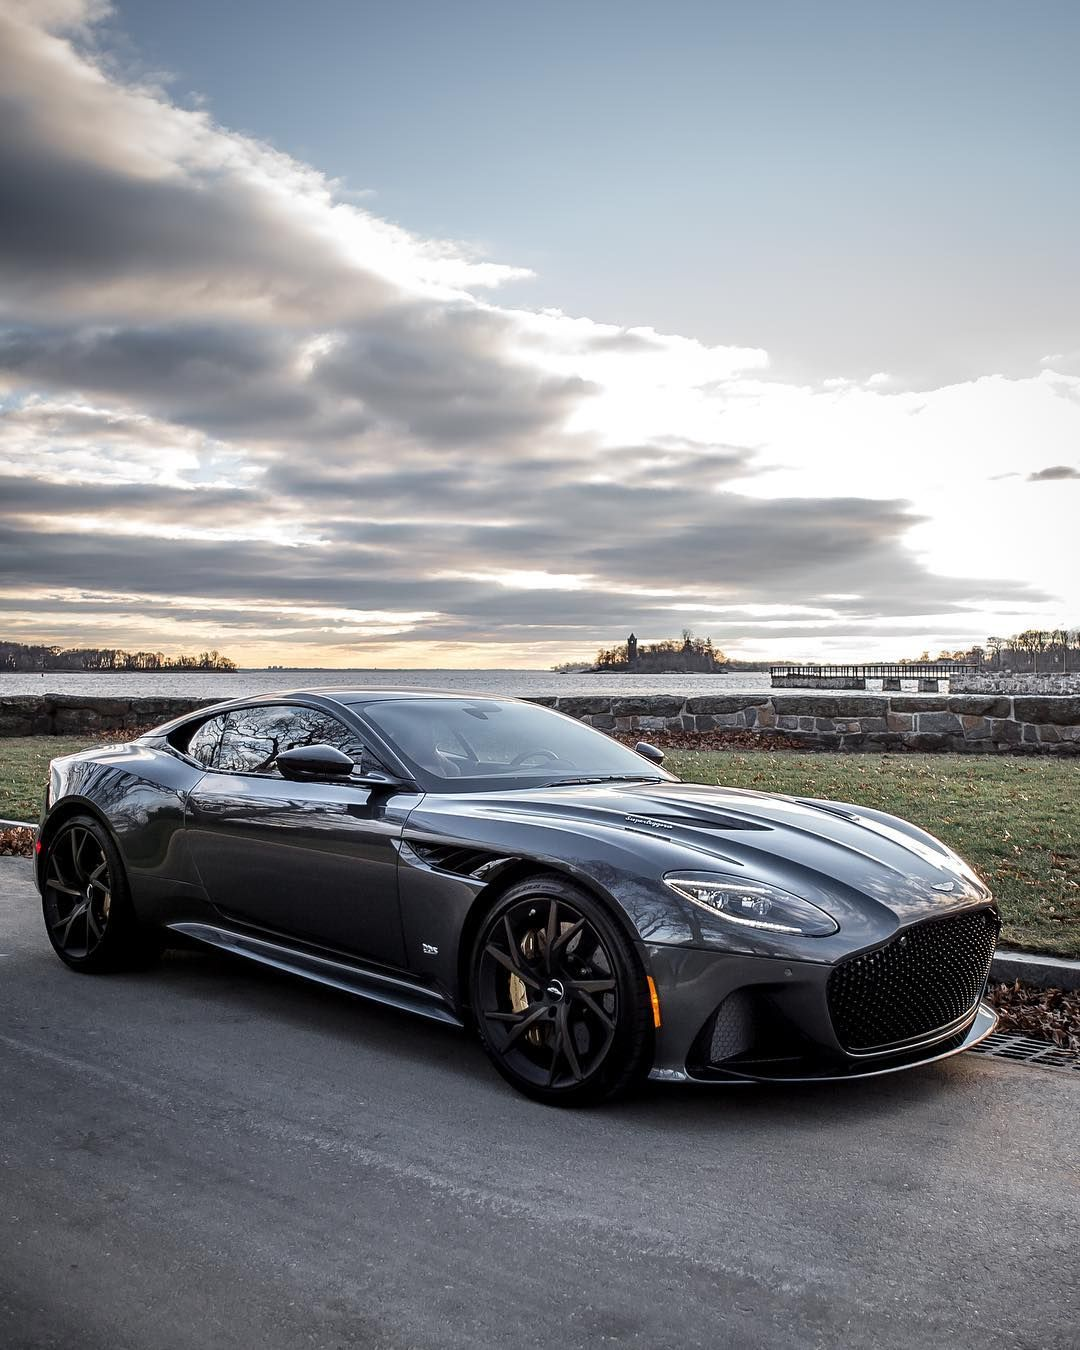 We Took Our #DBSSuperleggera Out For A Sunset Photoshoot